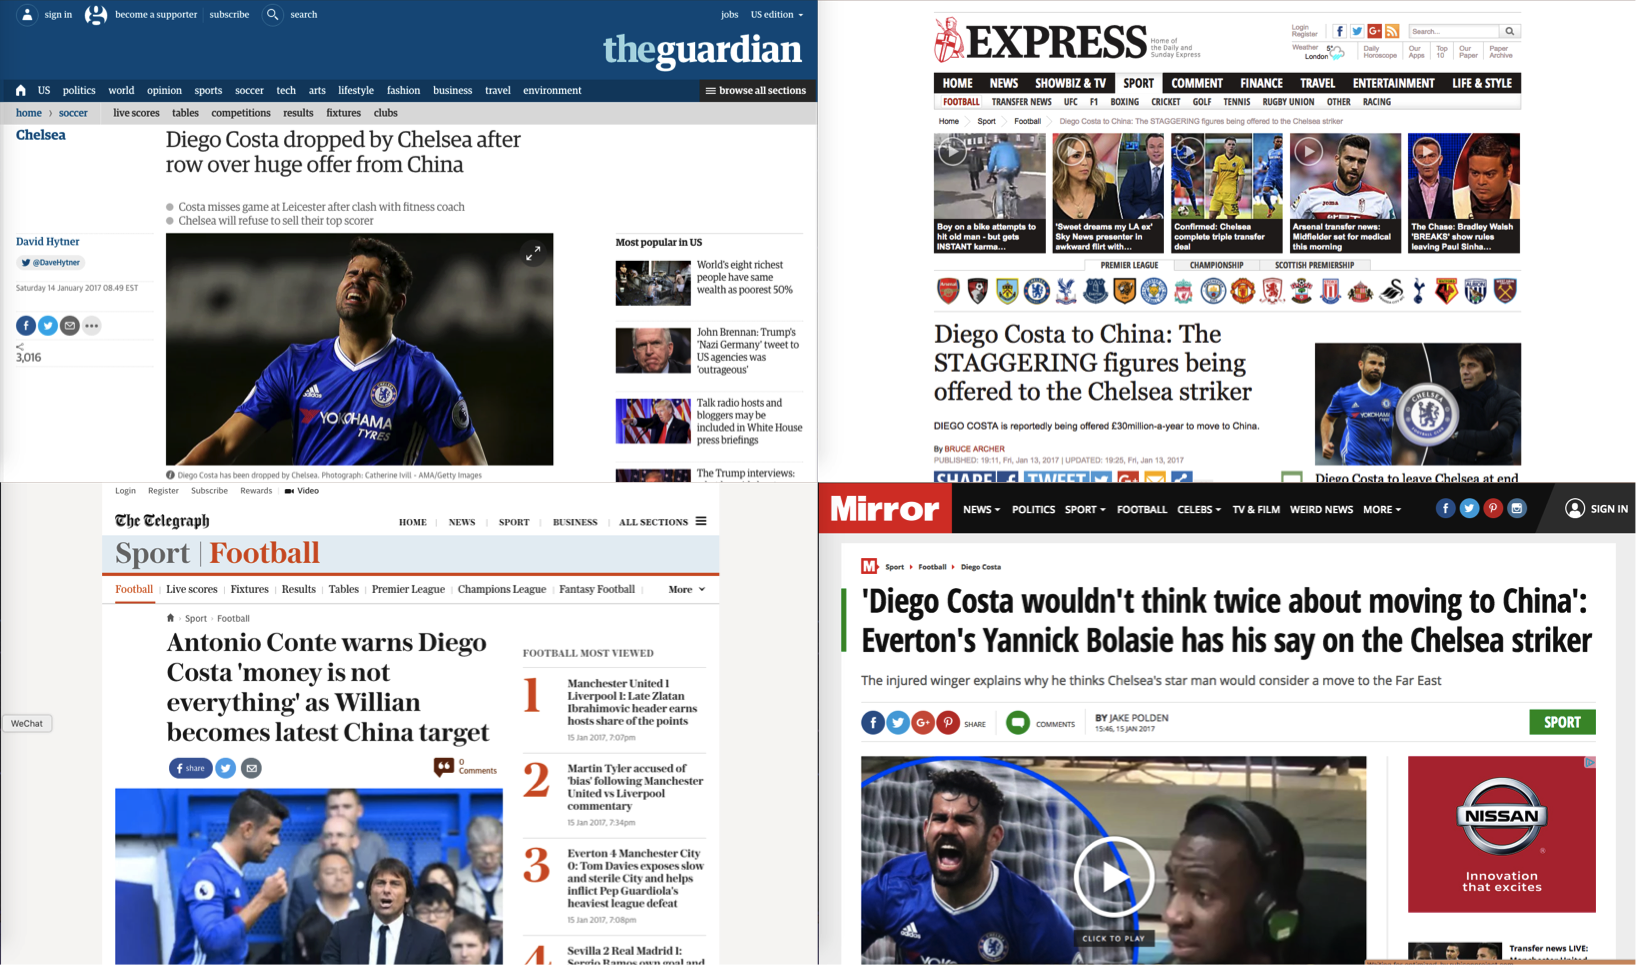 Just a few of the headlines